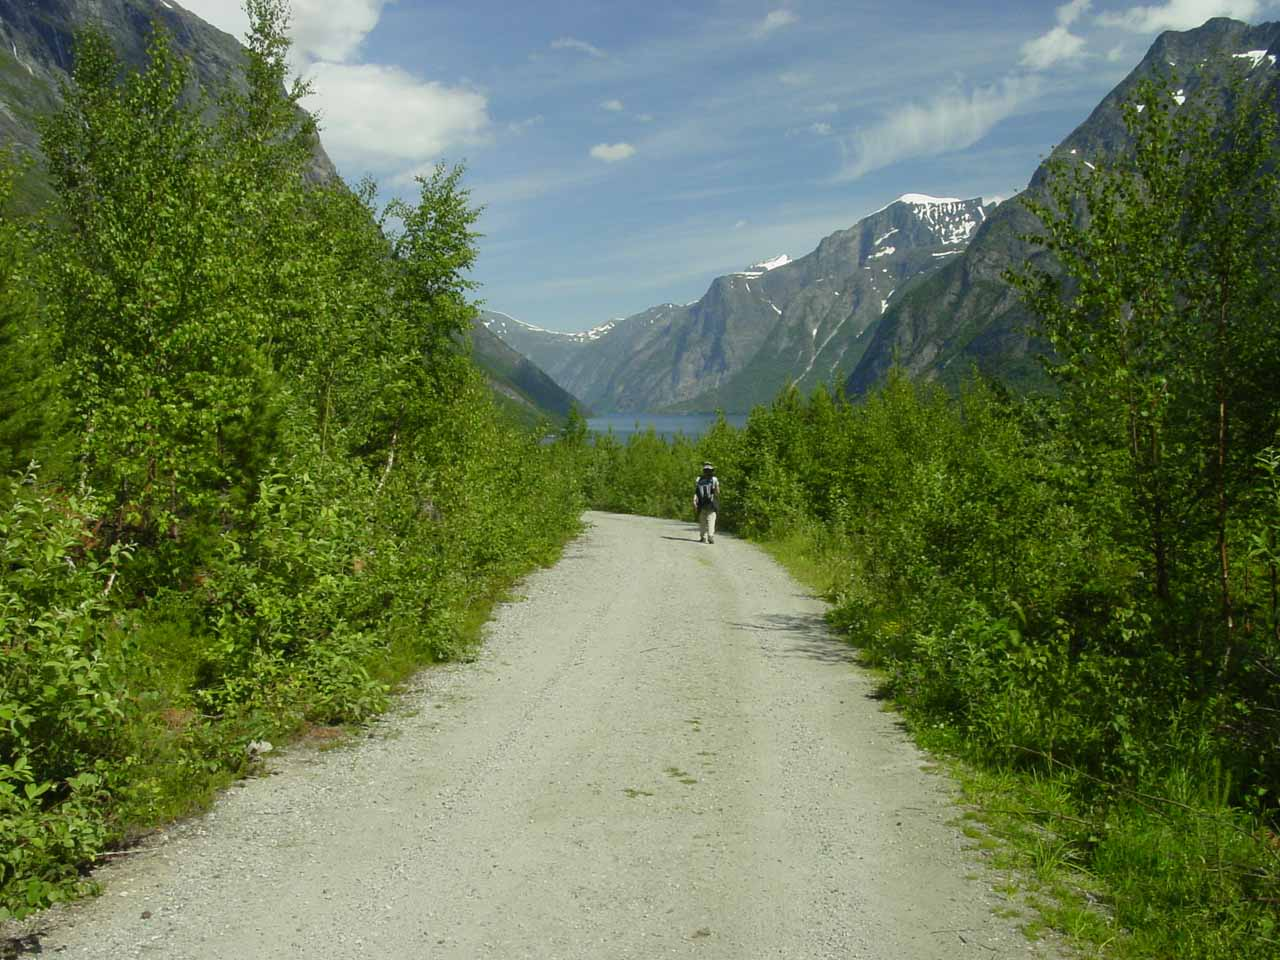 Returning to the trailhead with Eikesdalsvatnet in the distance